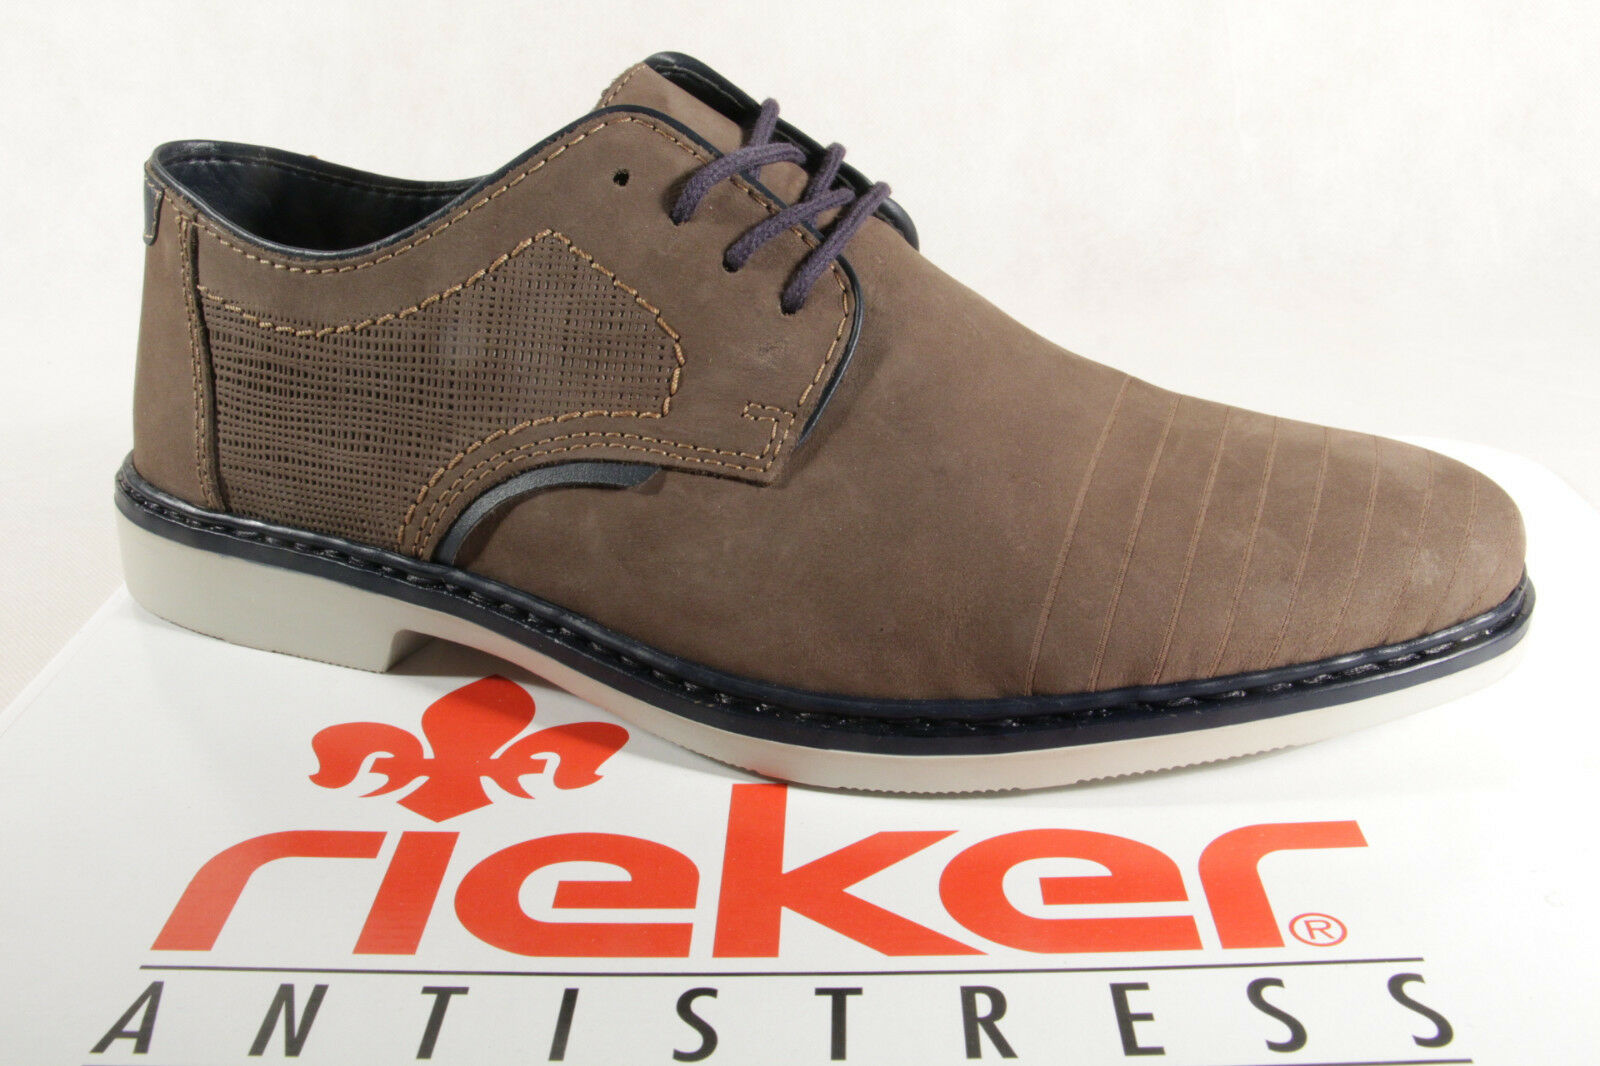 Rieker Men's Lace-Up shoes, Low shoes 13032 Sneakers Trainers Brown Leather New